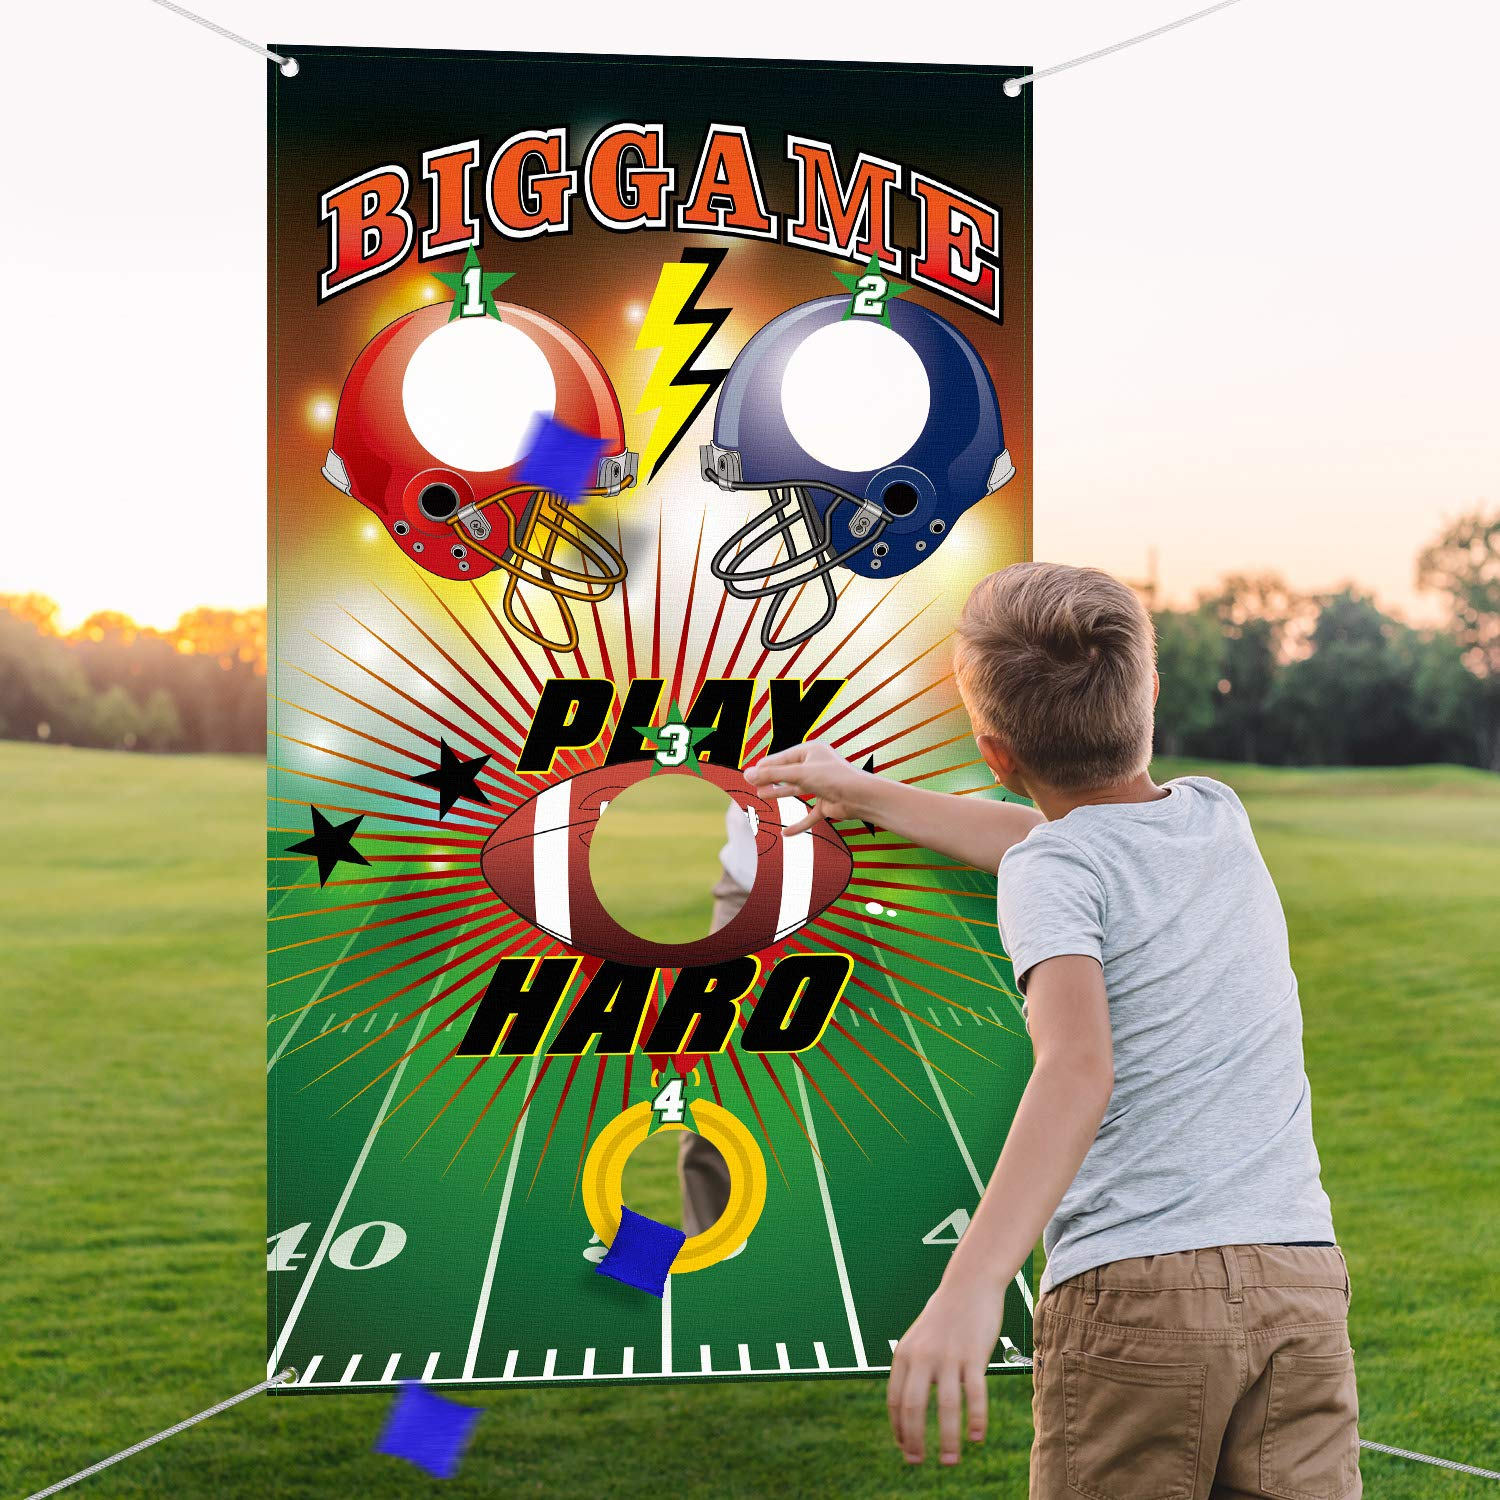 Football Toss Game with 3 Bean Bags, Indoor and Outdoor Bean Bag Toss Game for Children and Adults, Football Theme Party Decorations Supplies by Blulu